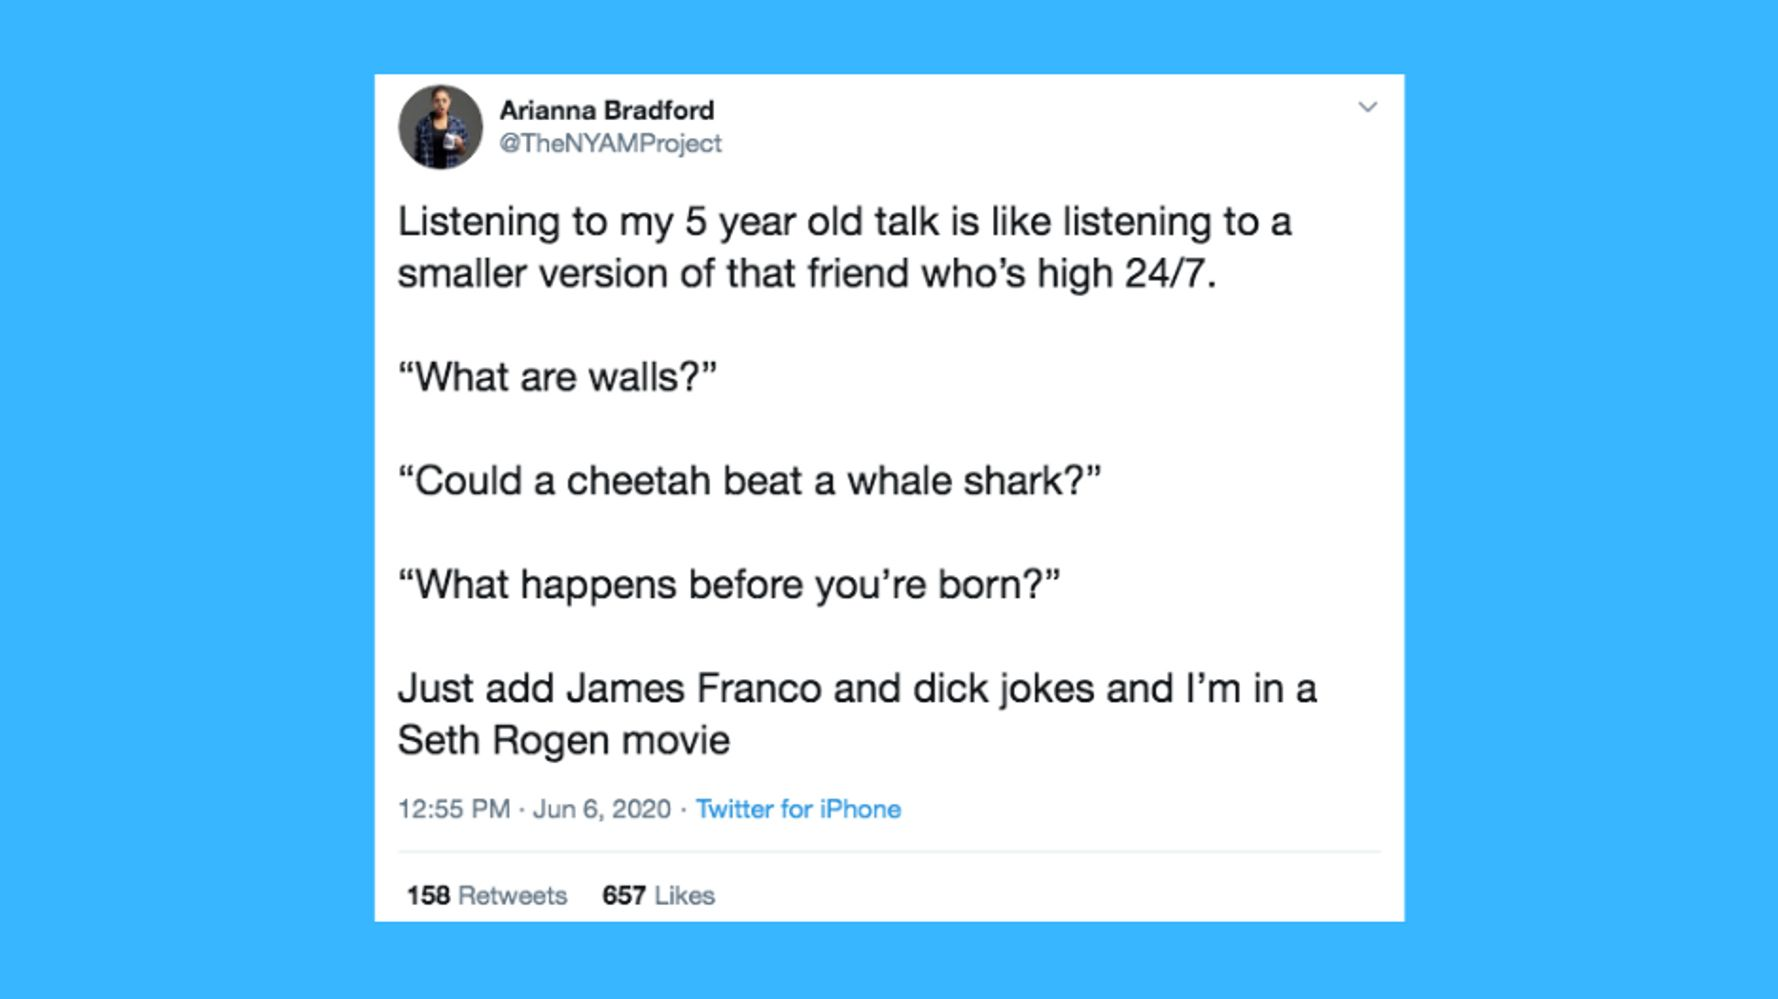 The Funniest Tweets From Parents This Week (June 6-12)